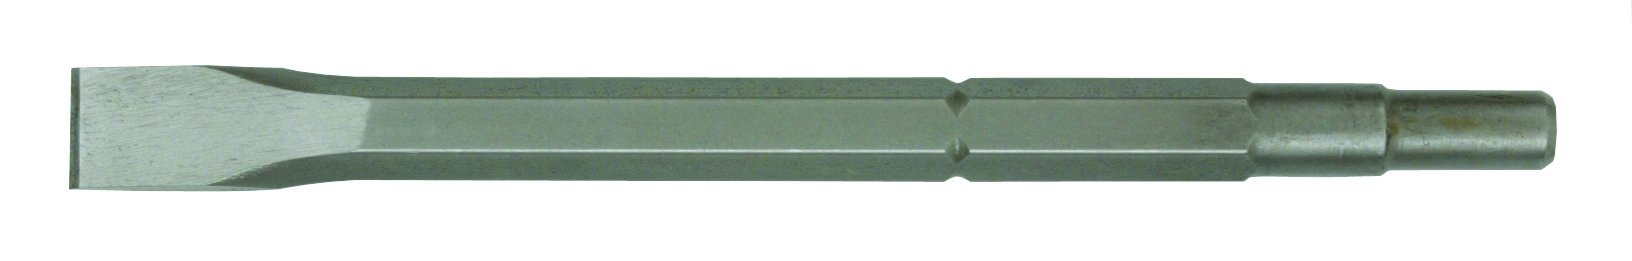 Hitachi 985381 3/4-Inch Hex and 21/32-Inch Round 1-Inch by 12-Inch Flat Narrow Chisel